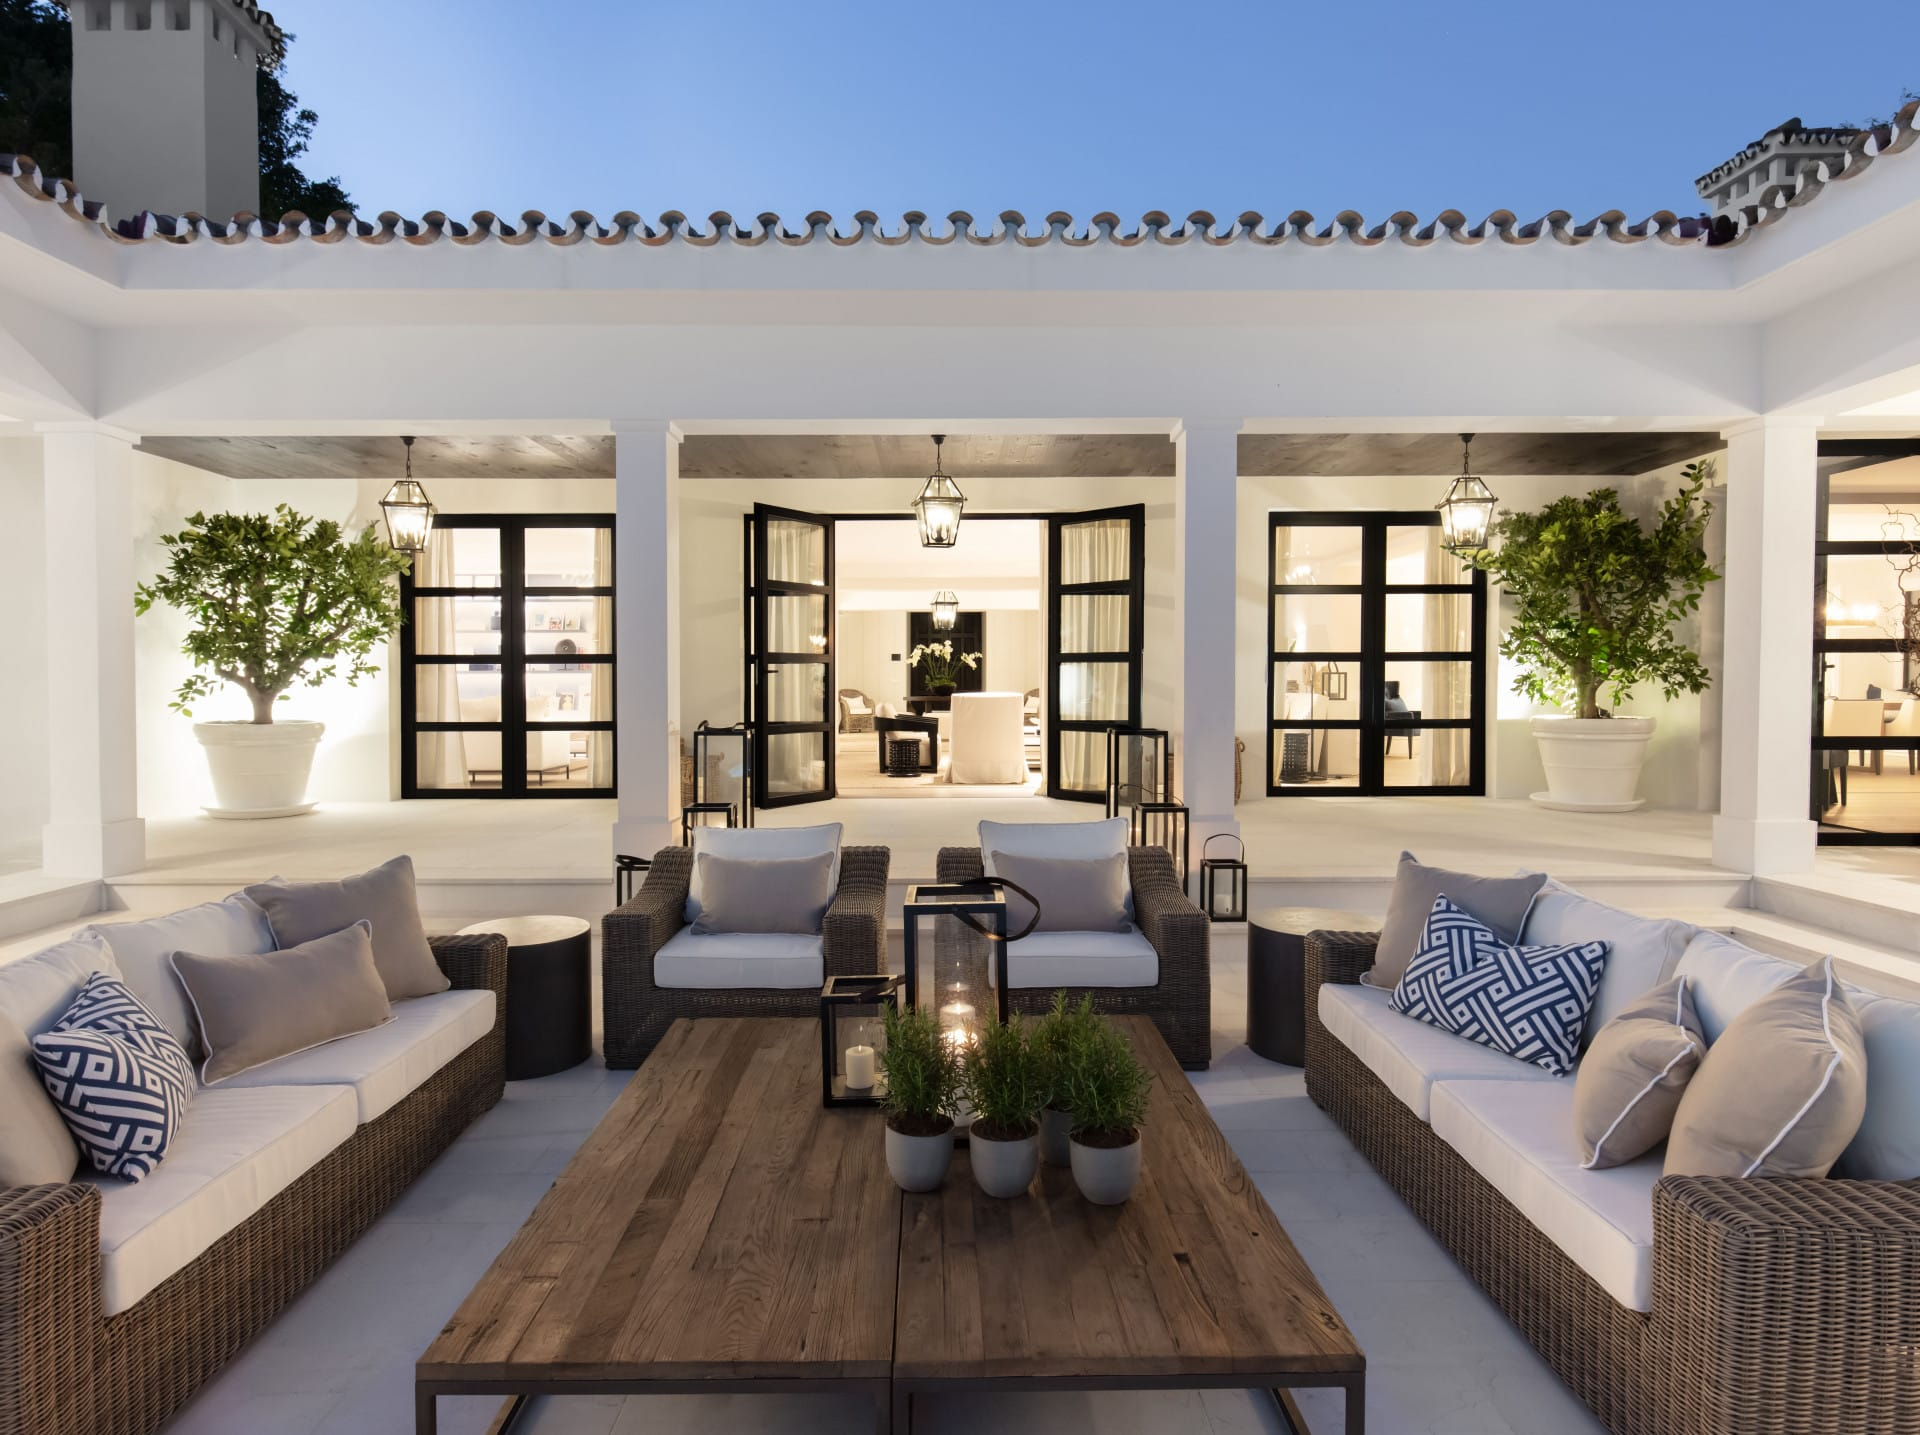 New architectural trends for Marbella in 2019